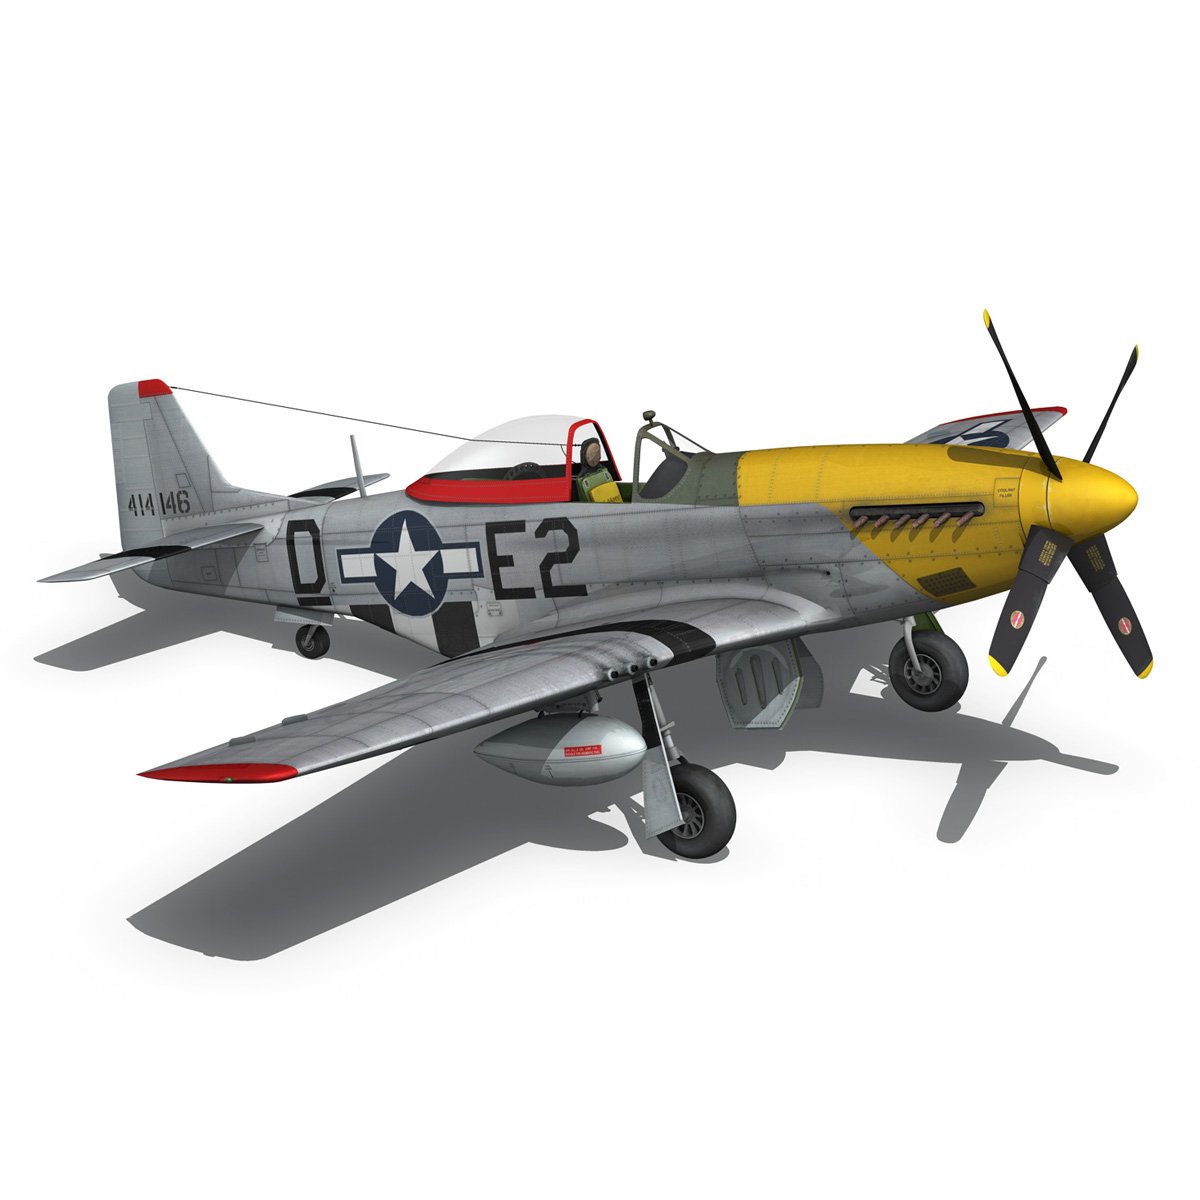 north american p-51d – mustang – detroit miss 3d model 3ds fbx c4d lwo obj 267605